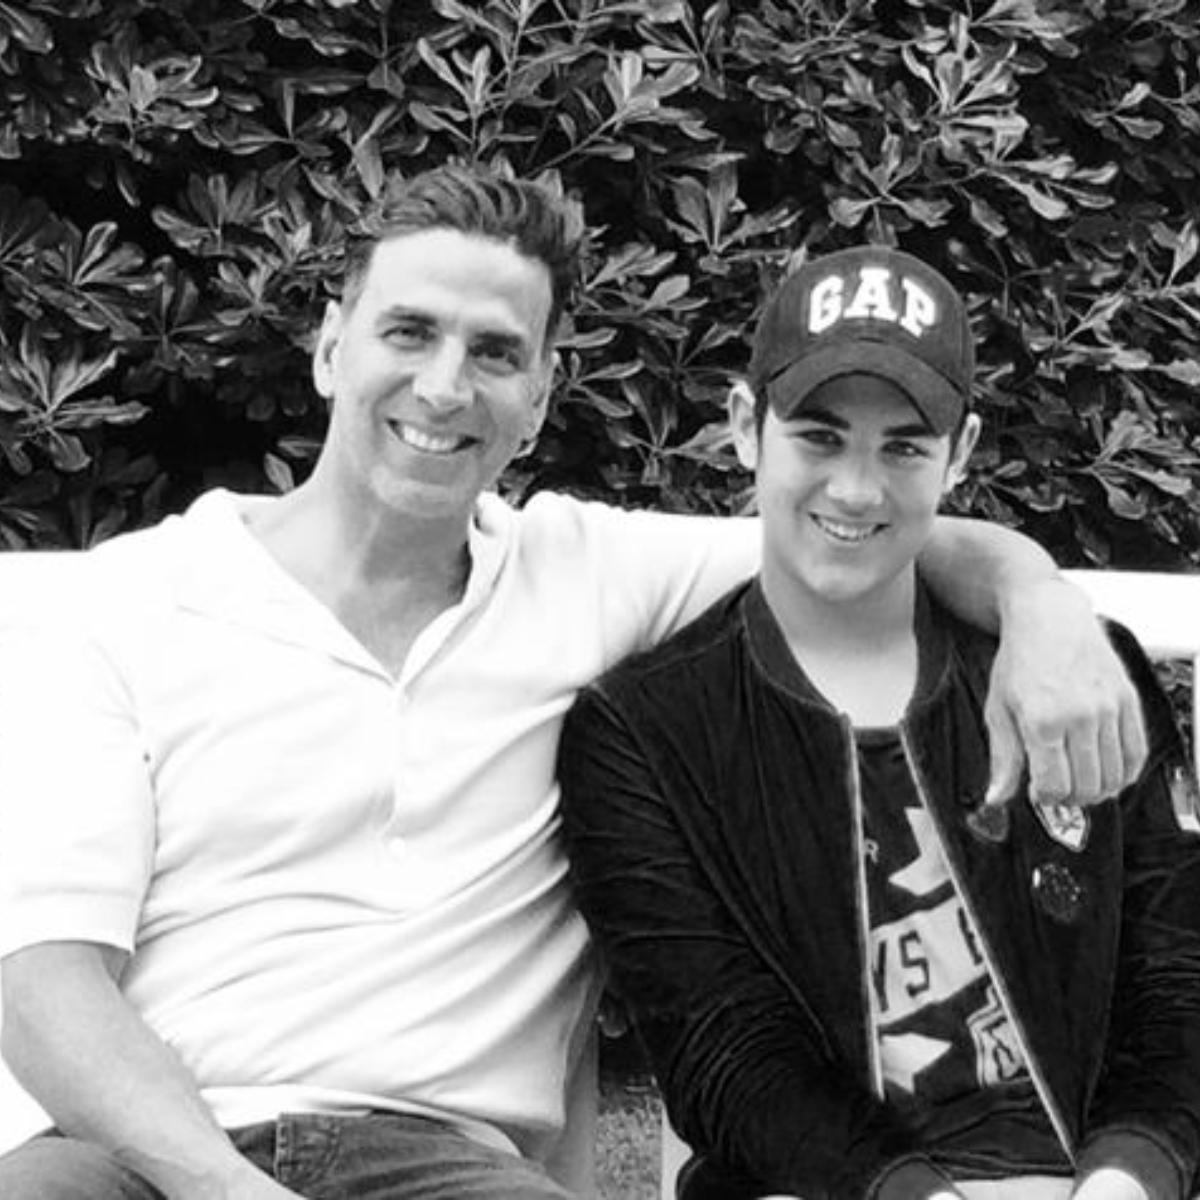 Akshay Kumar's cute moments with his son